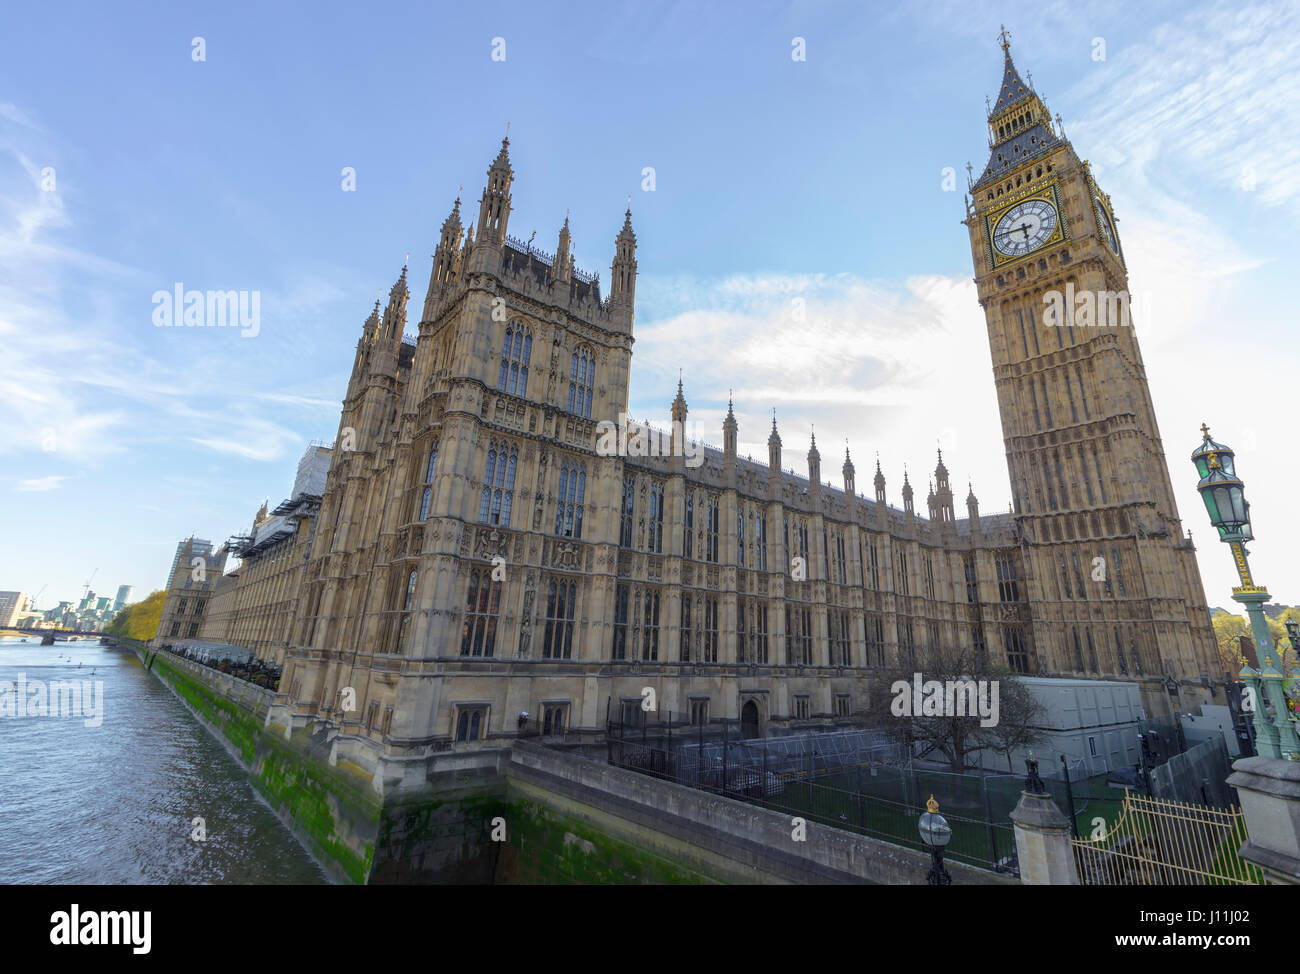 Famous landmark of Big Ben and Parliament in the City of Westminster in London, England, United Kingdom. - Stock Image